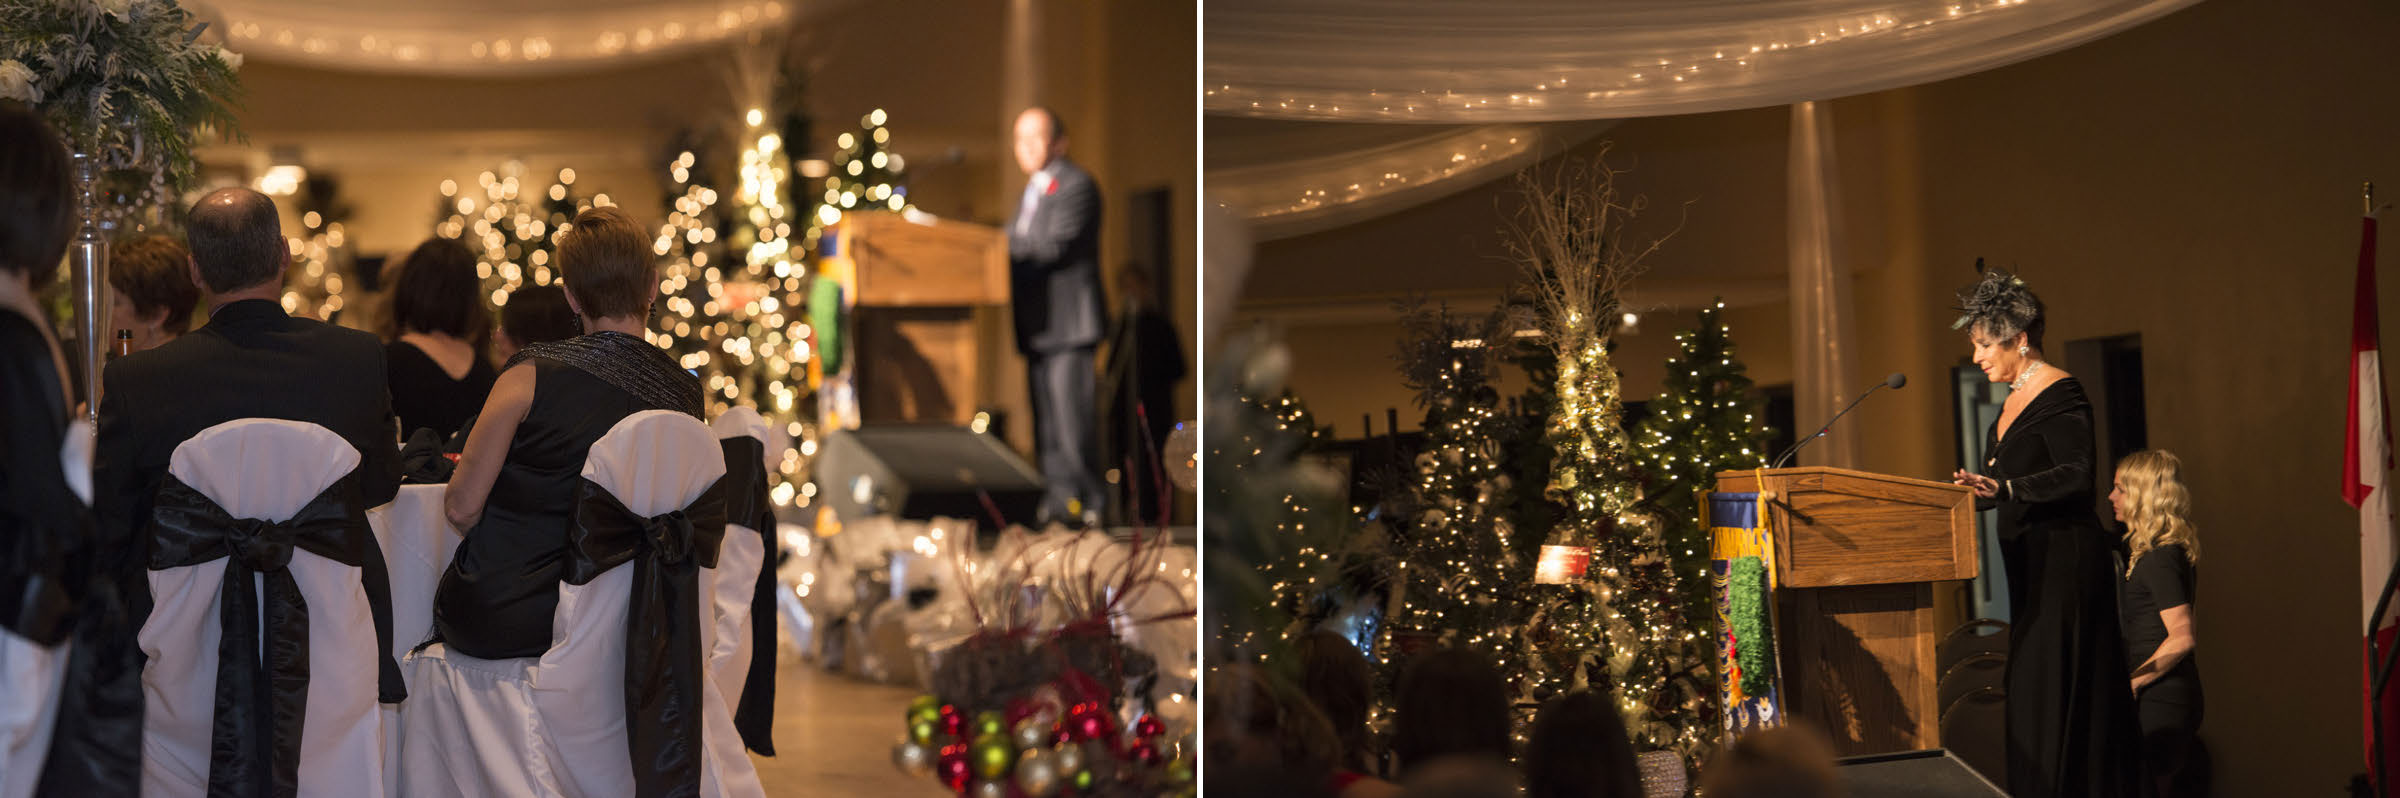 Festival of the trees_Page_16.jpg